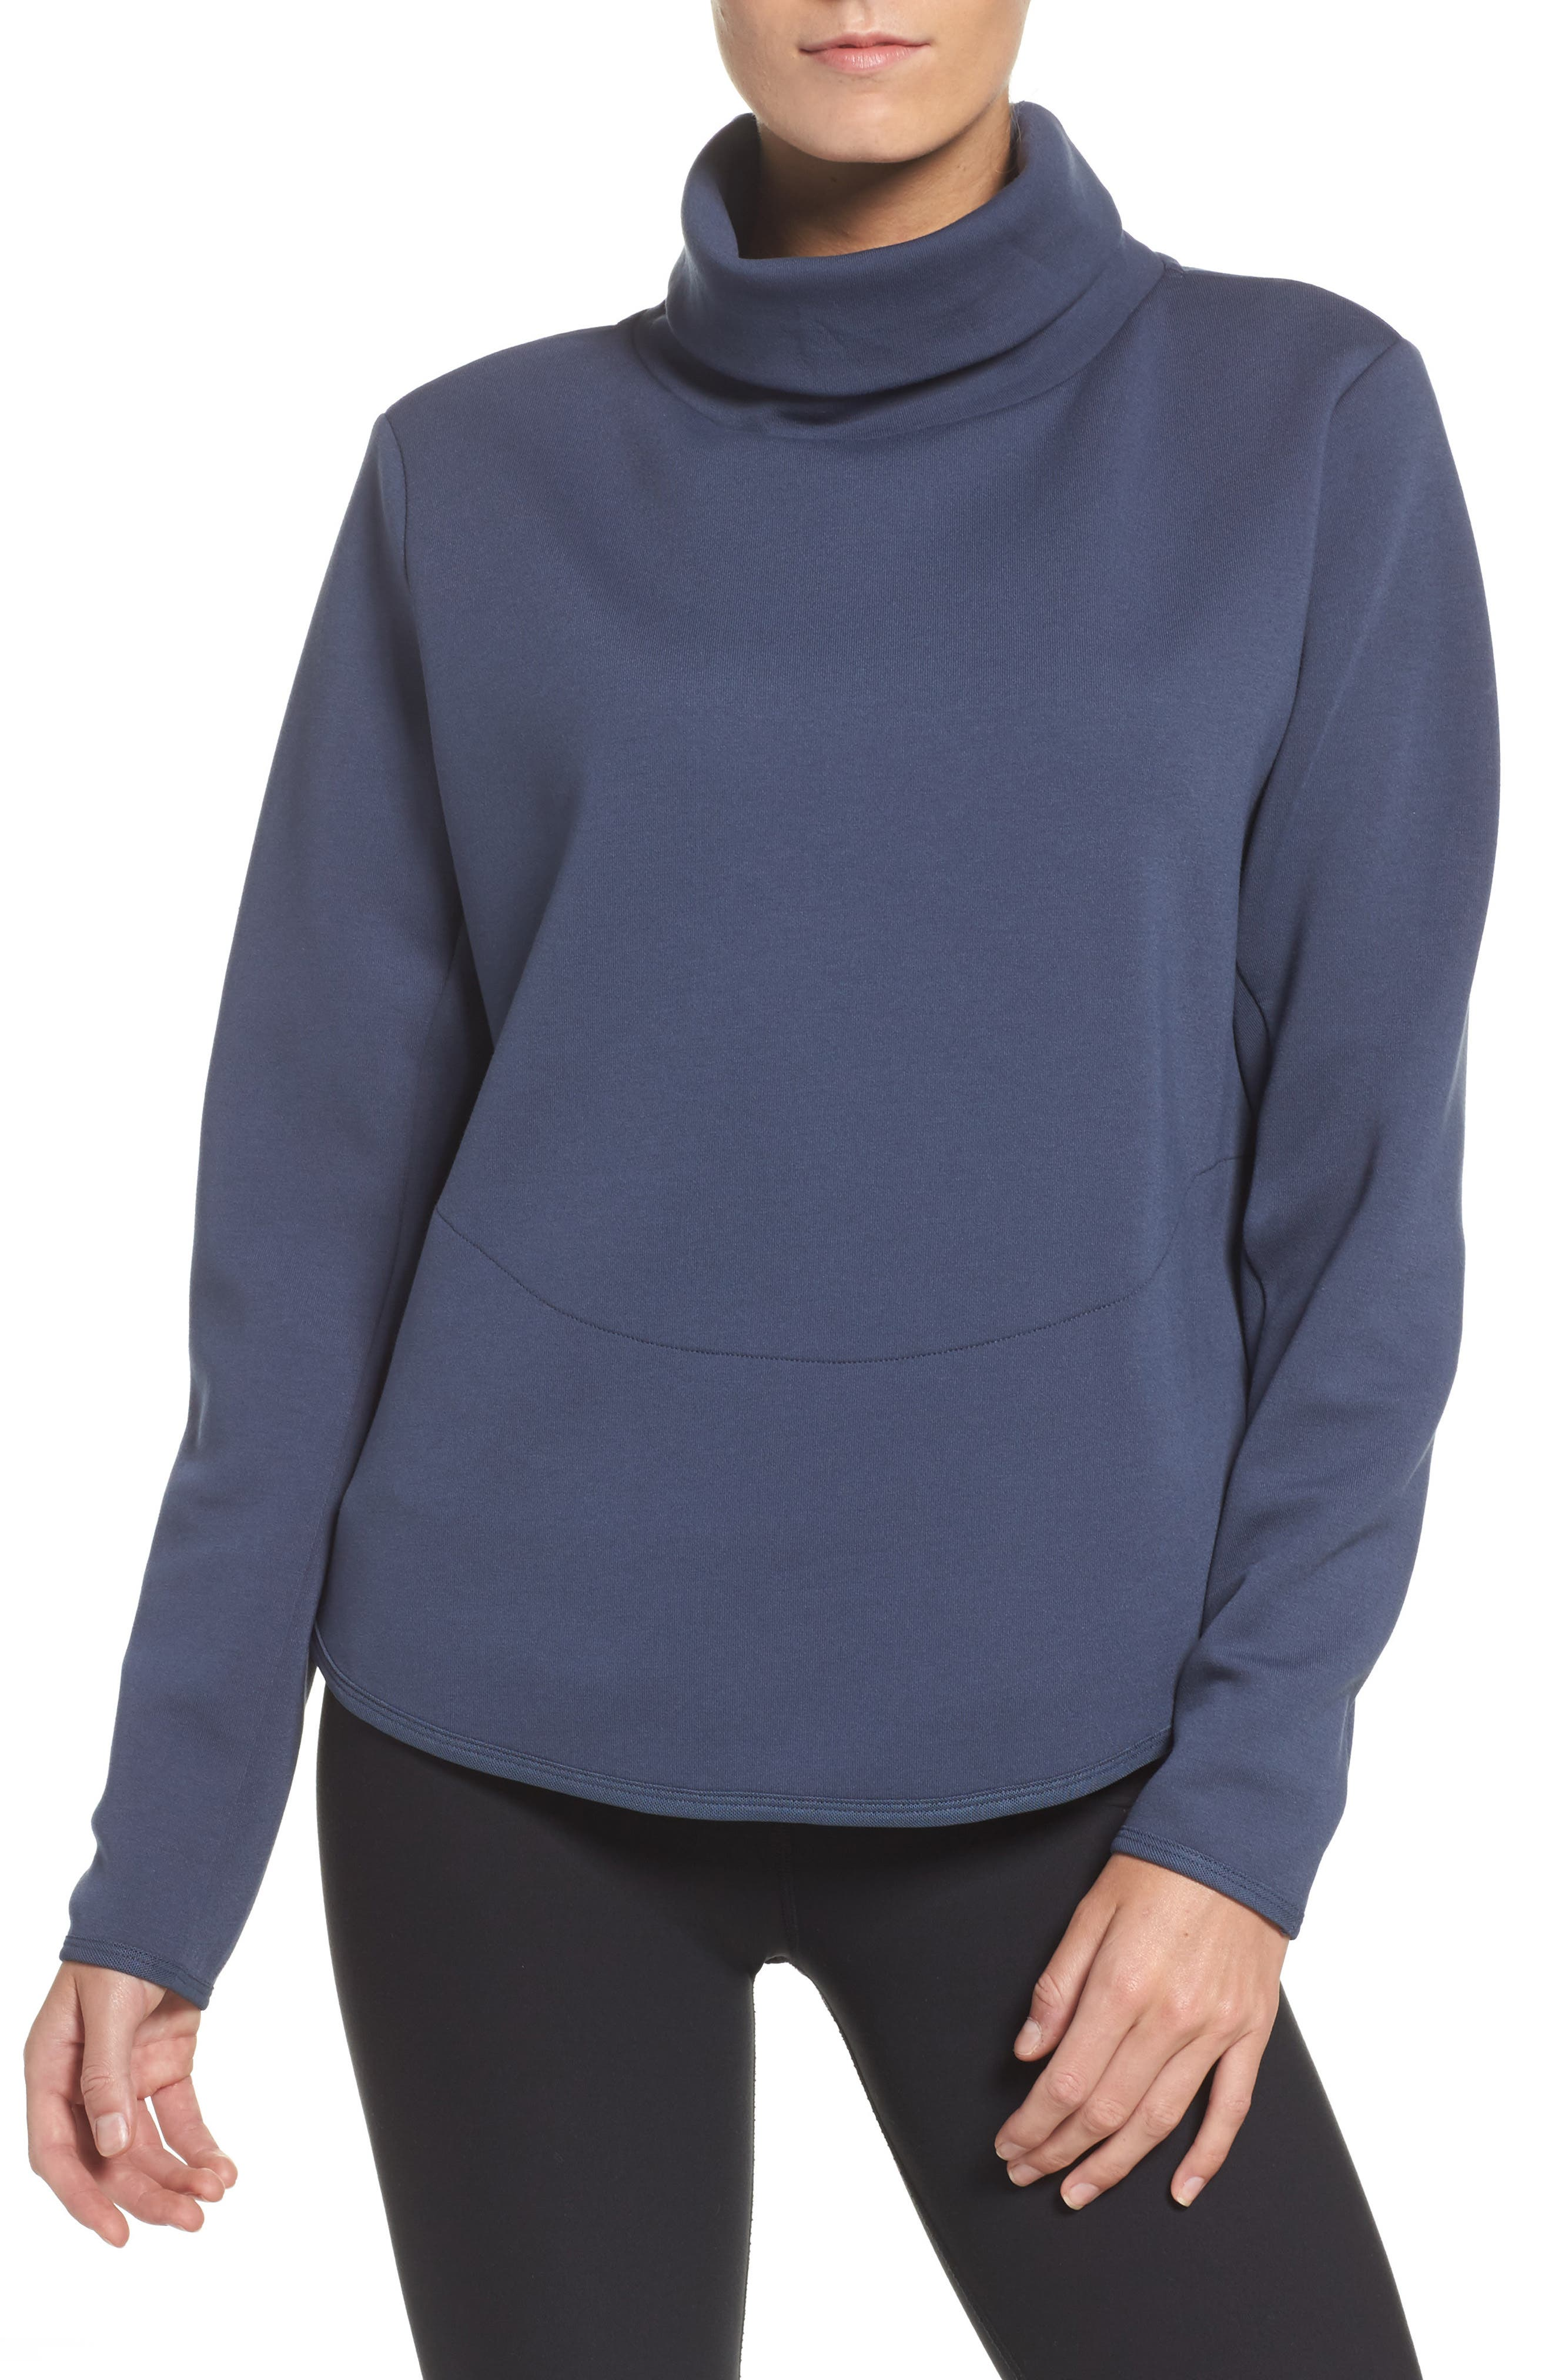 Therma Training Top,                         Main,                         color, Thunder Blue/ Black